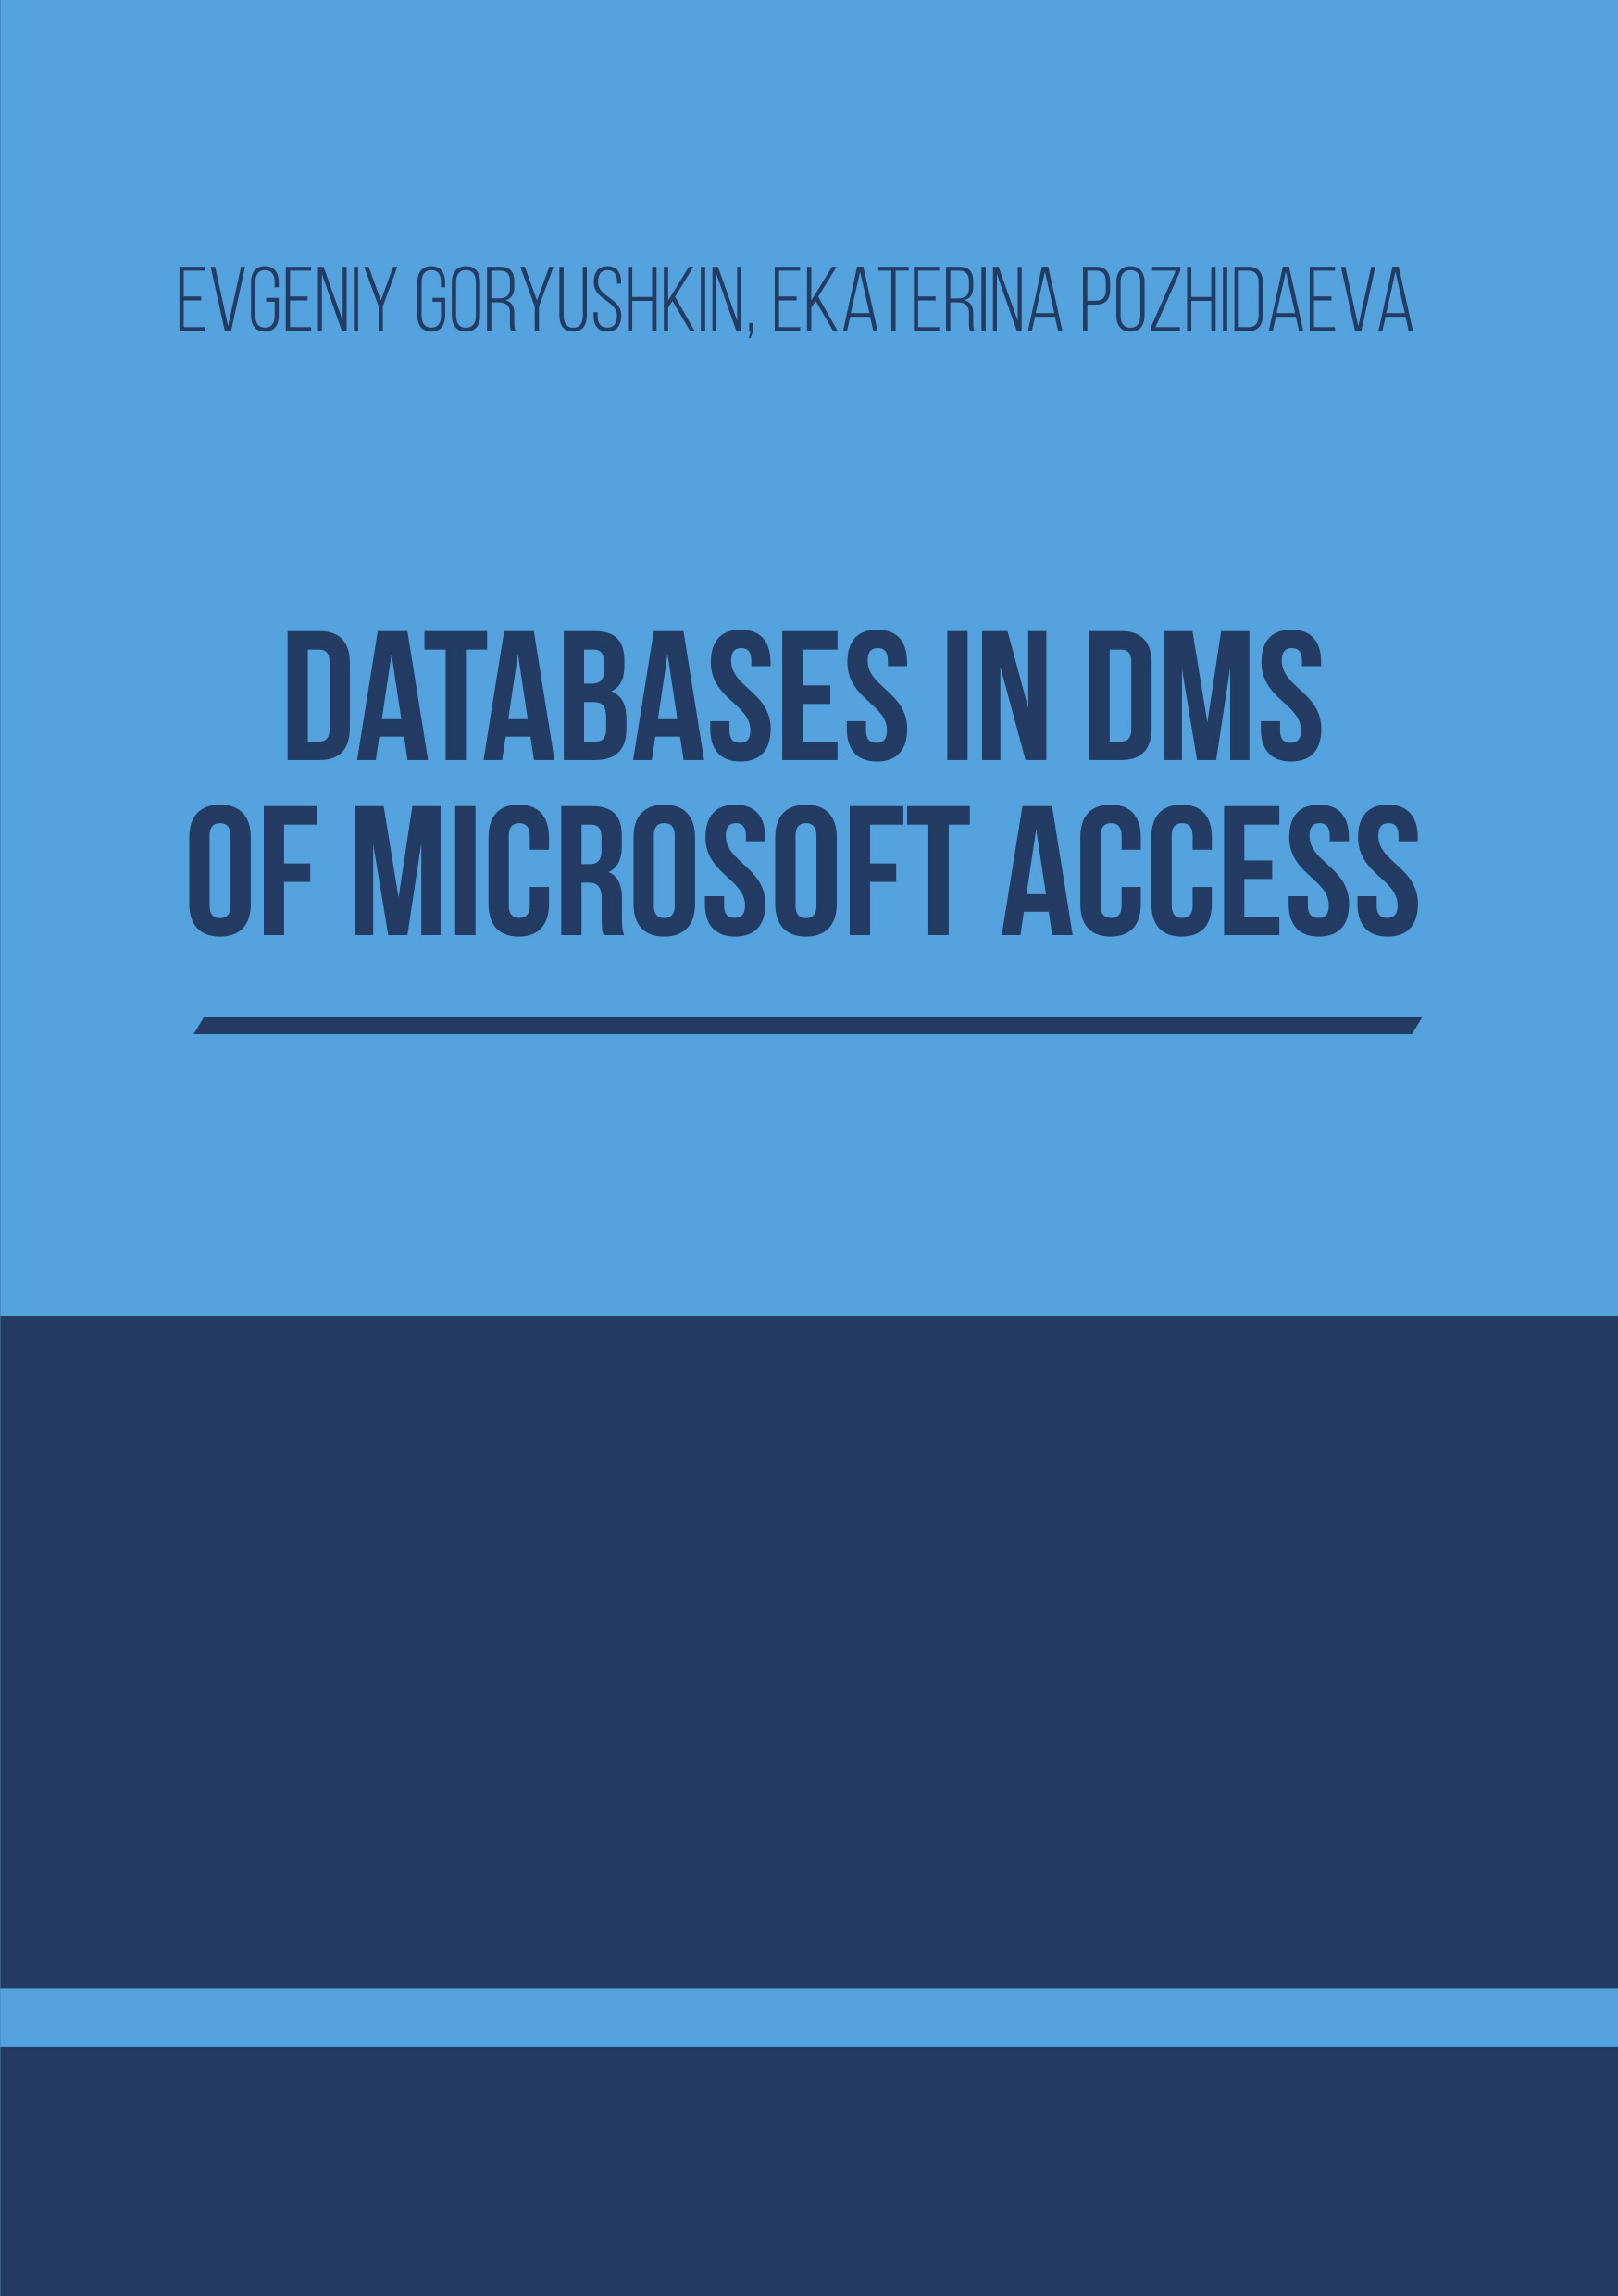 Evgeniy Goryushkin Databases in DMS of Microsoft Access: methodical handbook on computer science evgeniy goryushkin databases in dms of microsoft access methodical handbook on computer science